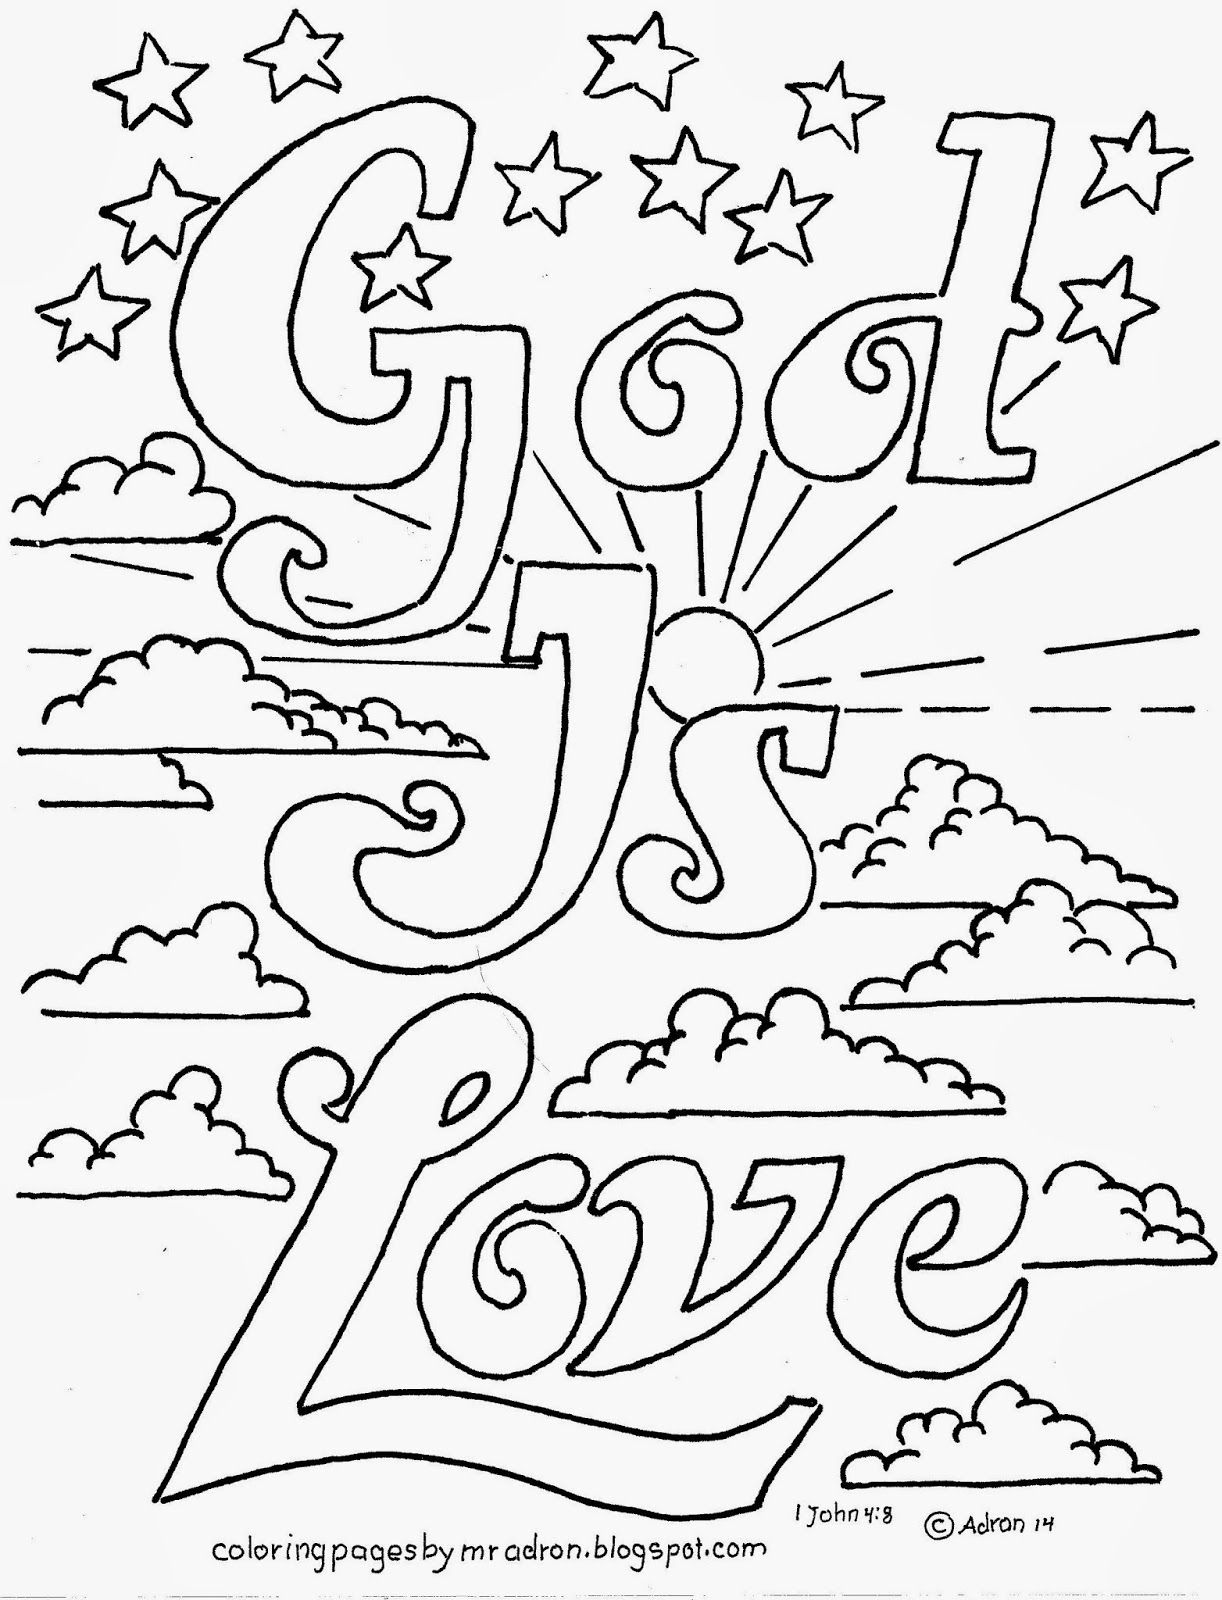 Coloring Pages For Kids By Mr Adron: God Is Love Printable